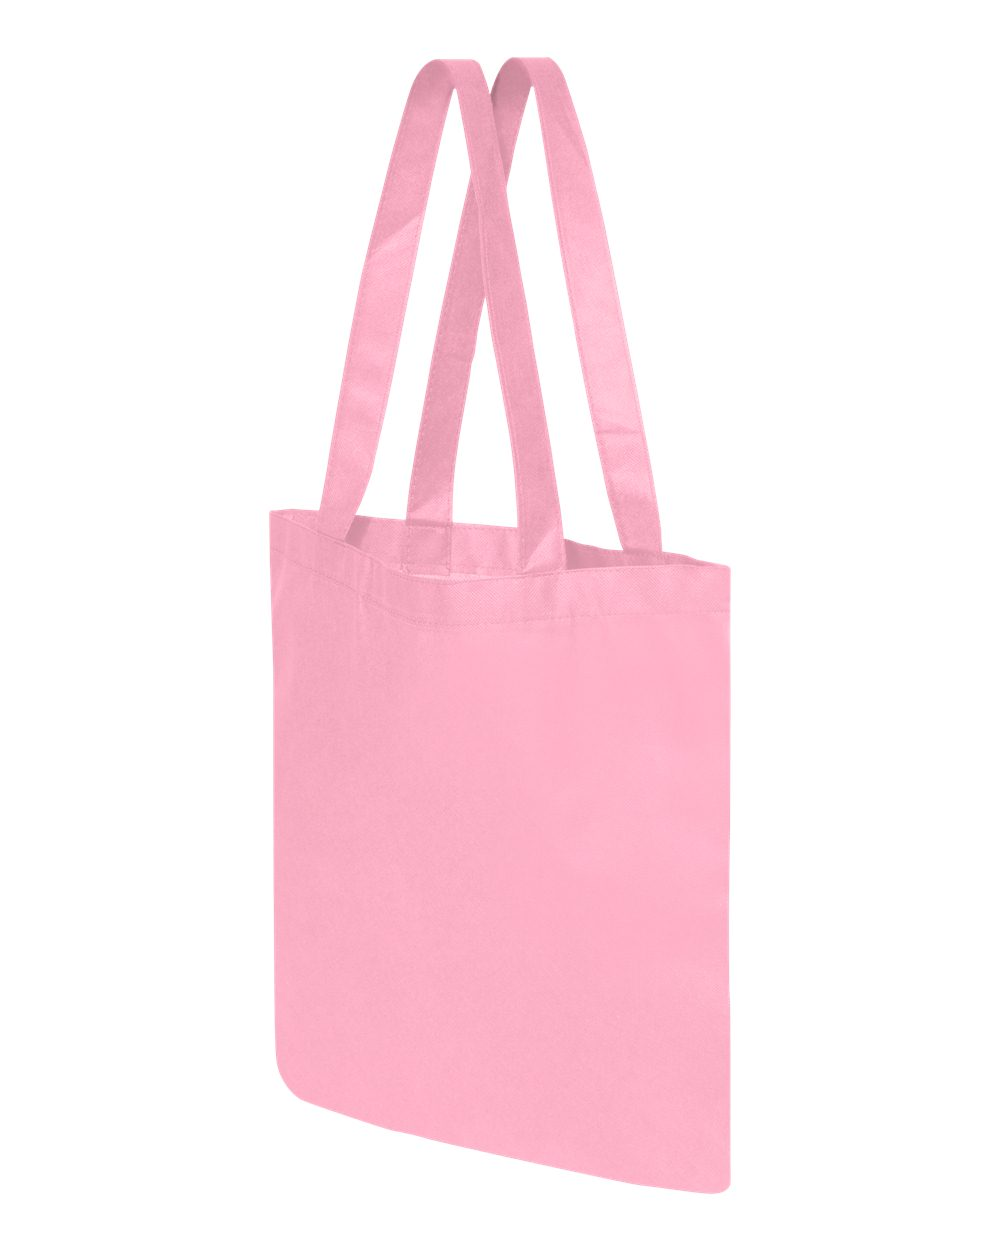 Valubag VB0900 - Eco Friendly Reusable Non-Woven Tote